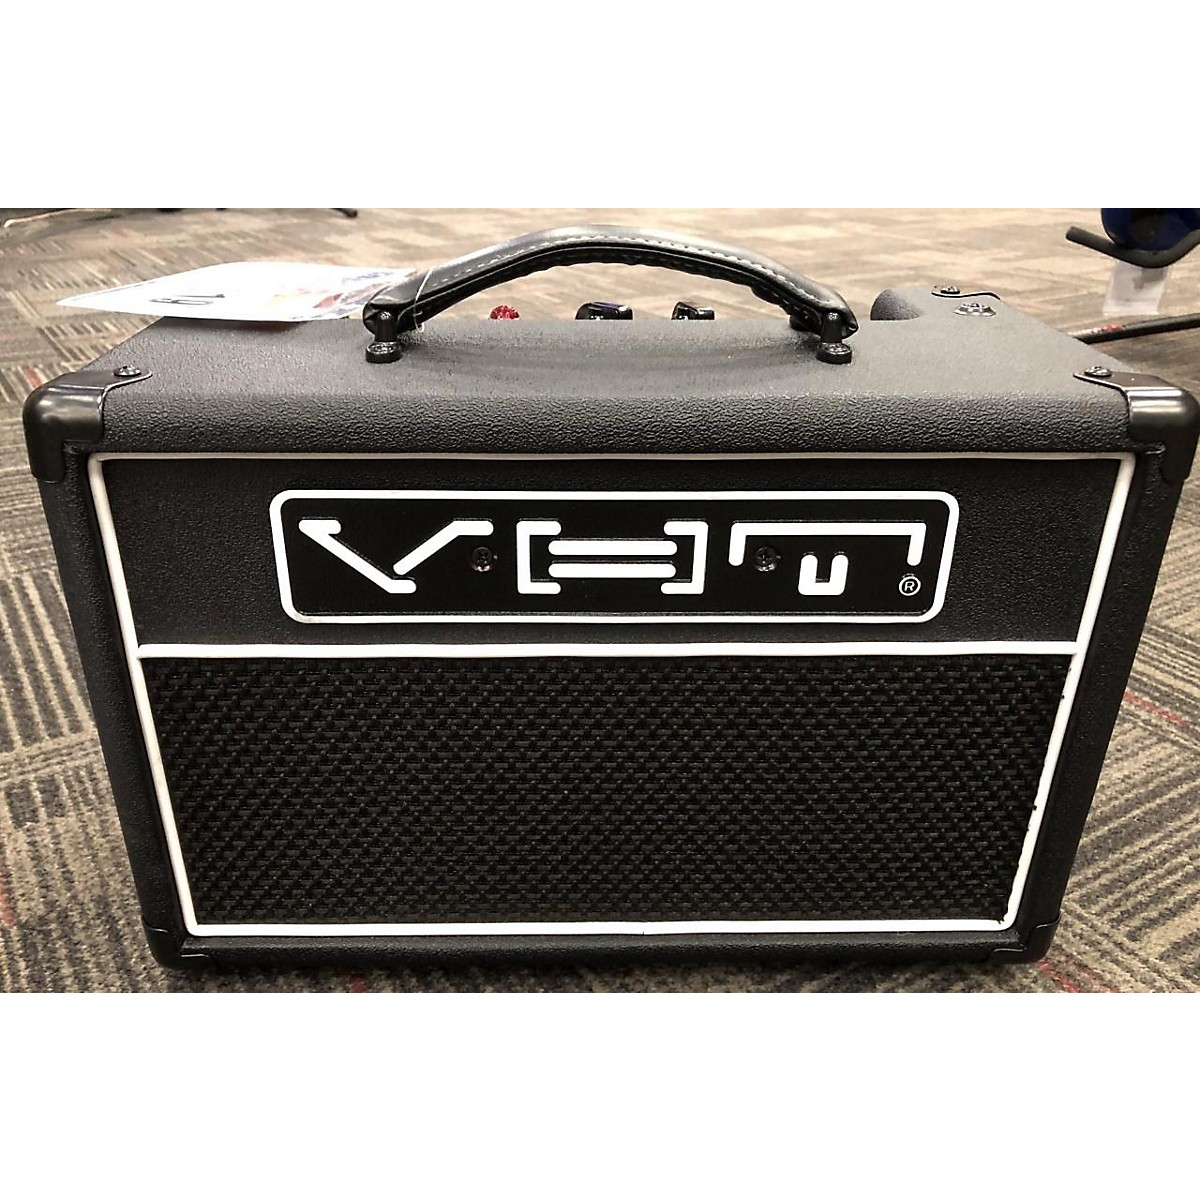 VHT Special 6 Ultra Hand Wired Tube Guitar Amp Head